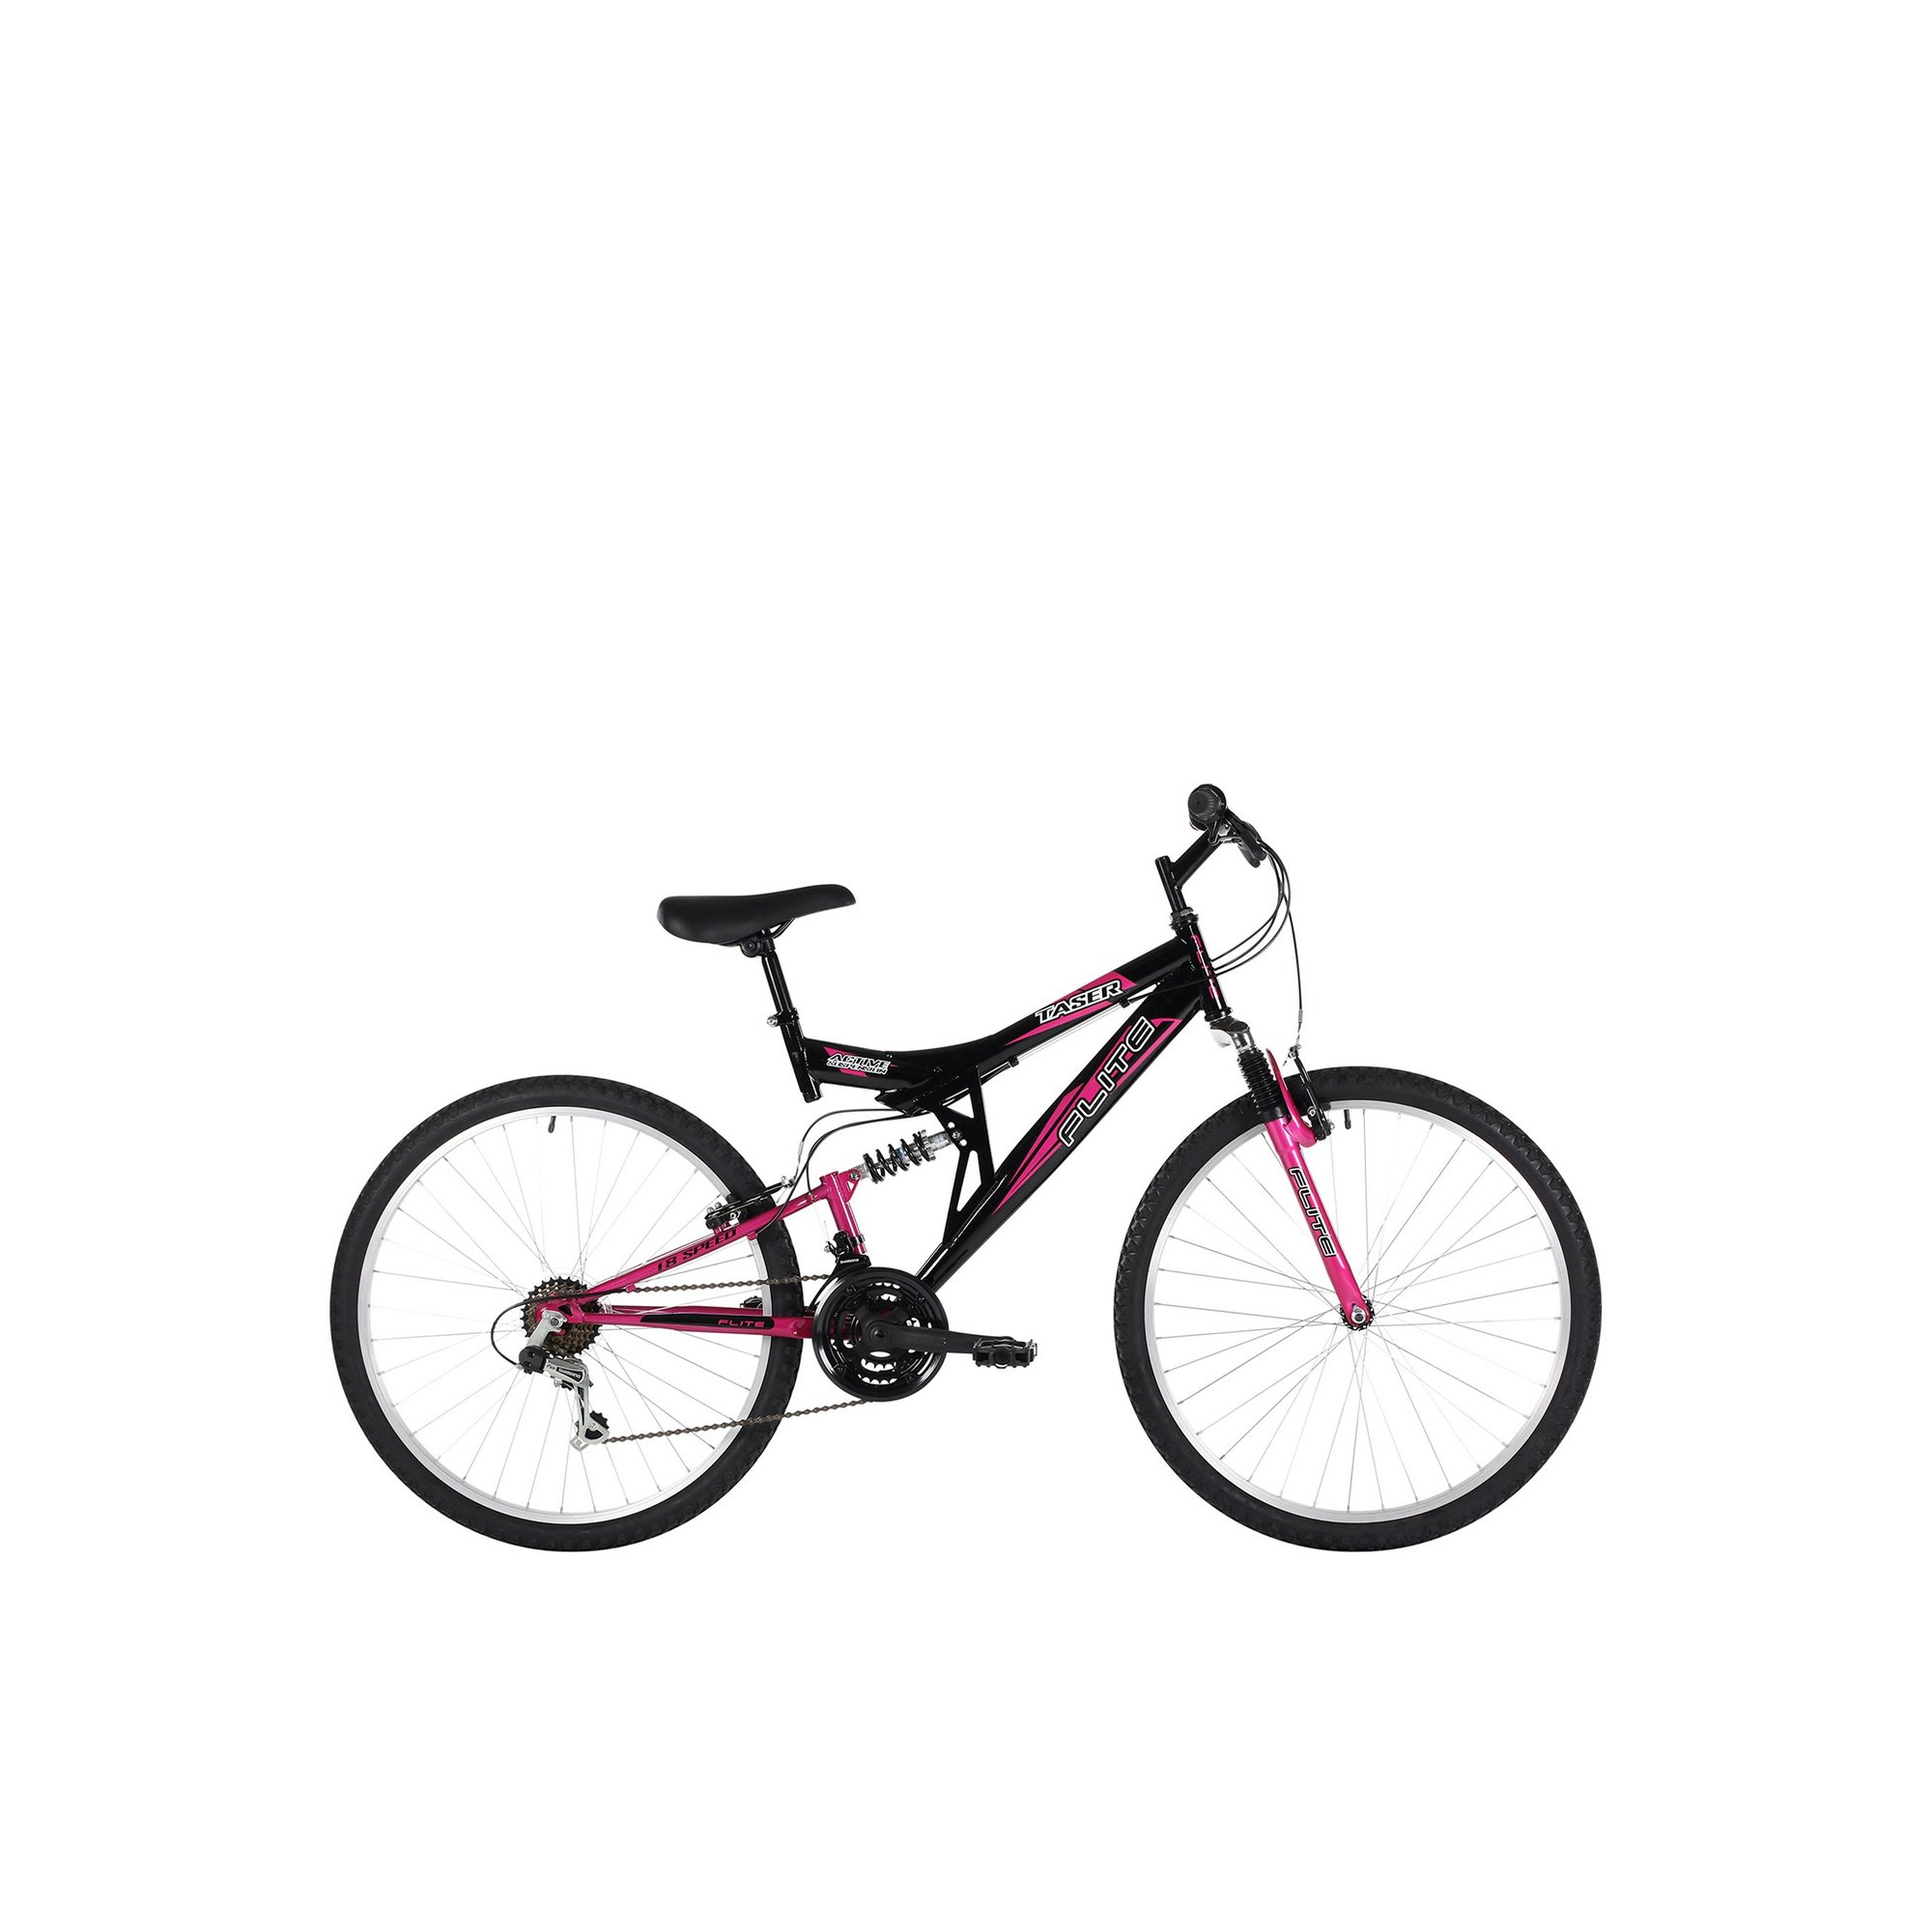 Image of Flite Taser 2 Womens MTB Bike - 18 Inch